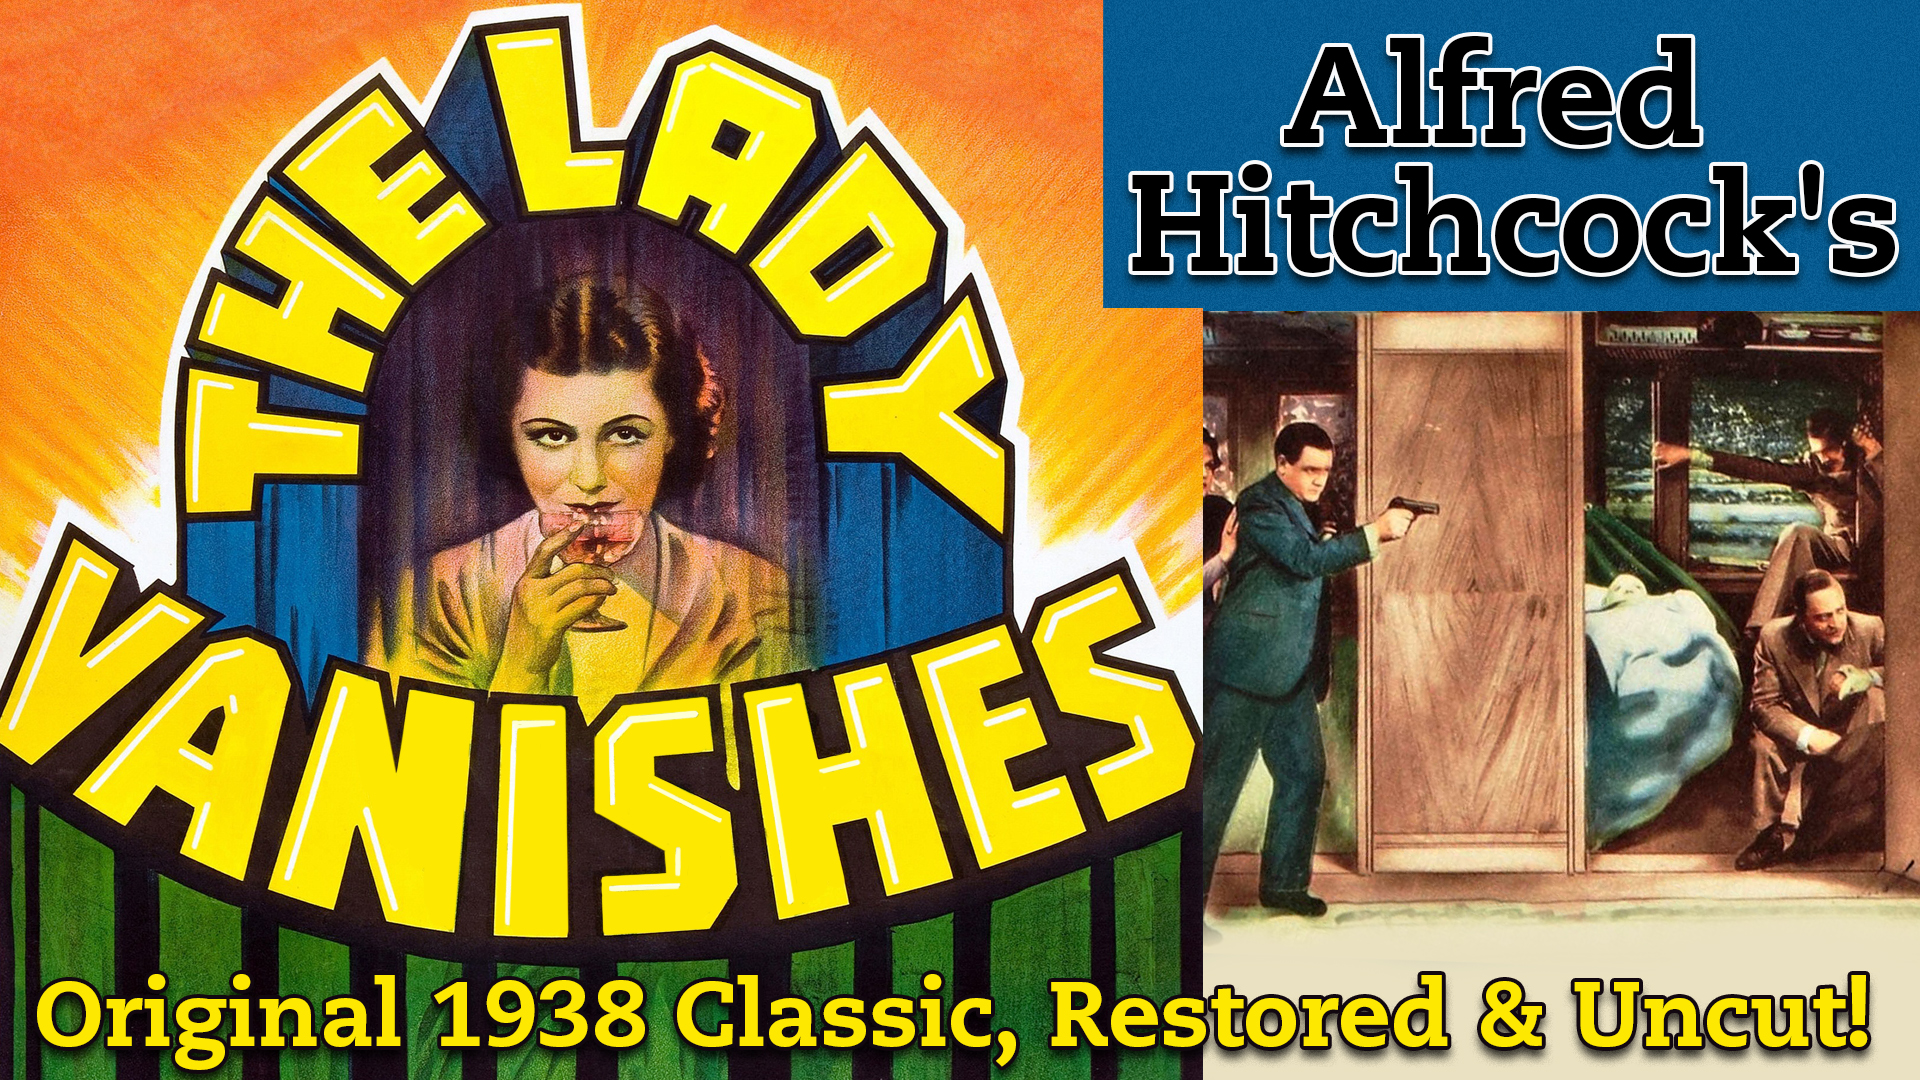 Alfred Hitchcock's The Lady Vanishes - Original 1938 Classic, Restored & Uncut!